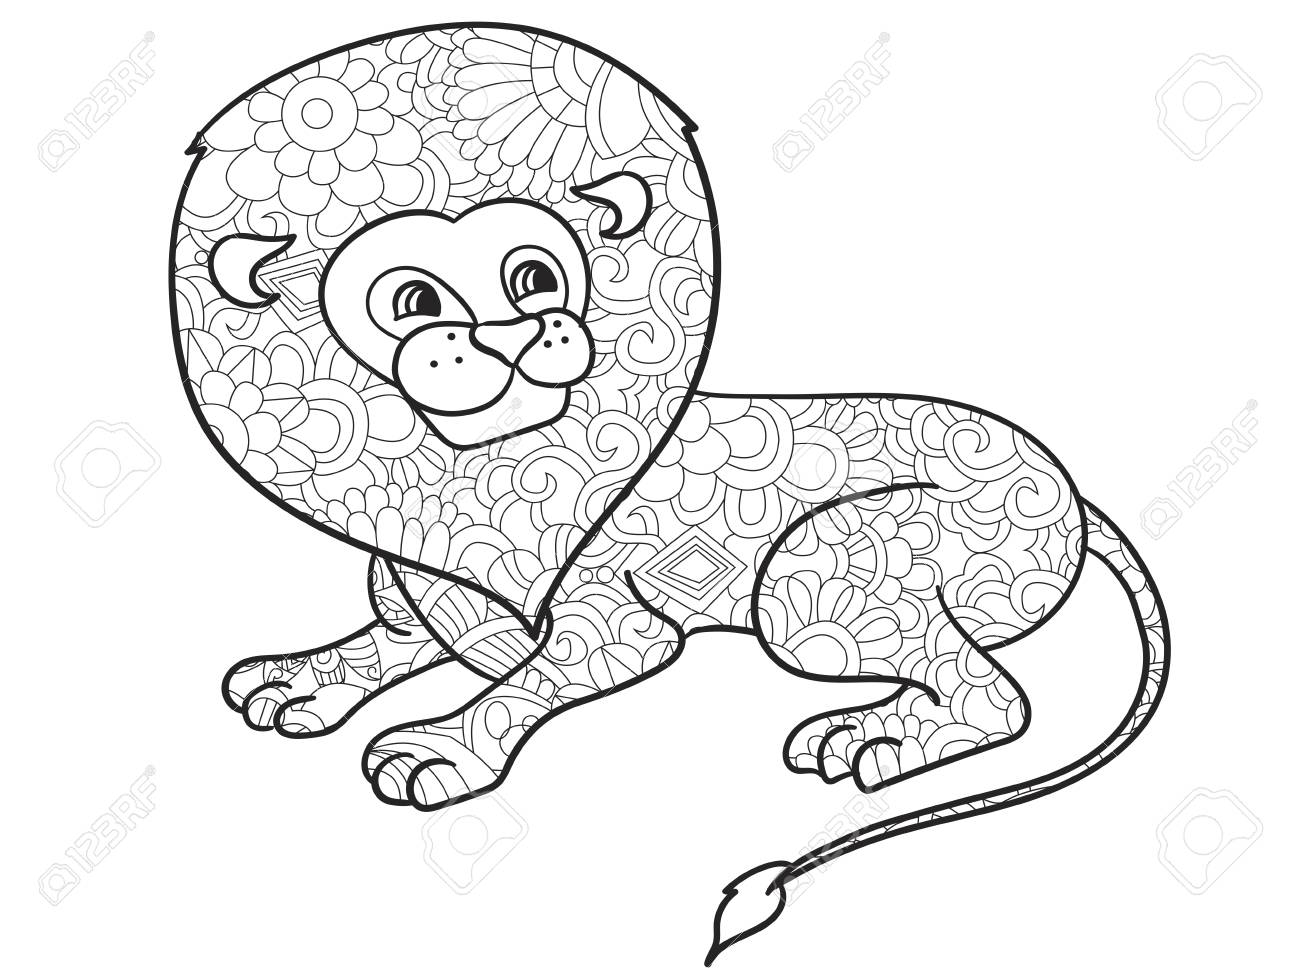 Lion Coloring Book Vector Illustration Animal Anti Stress For Adult Zentangle Style